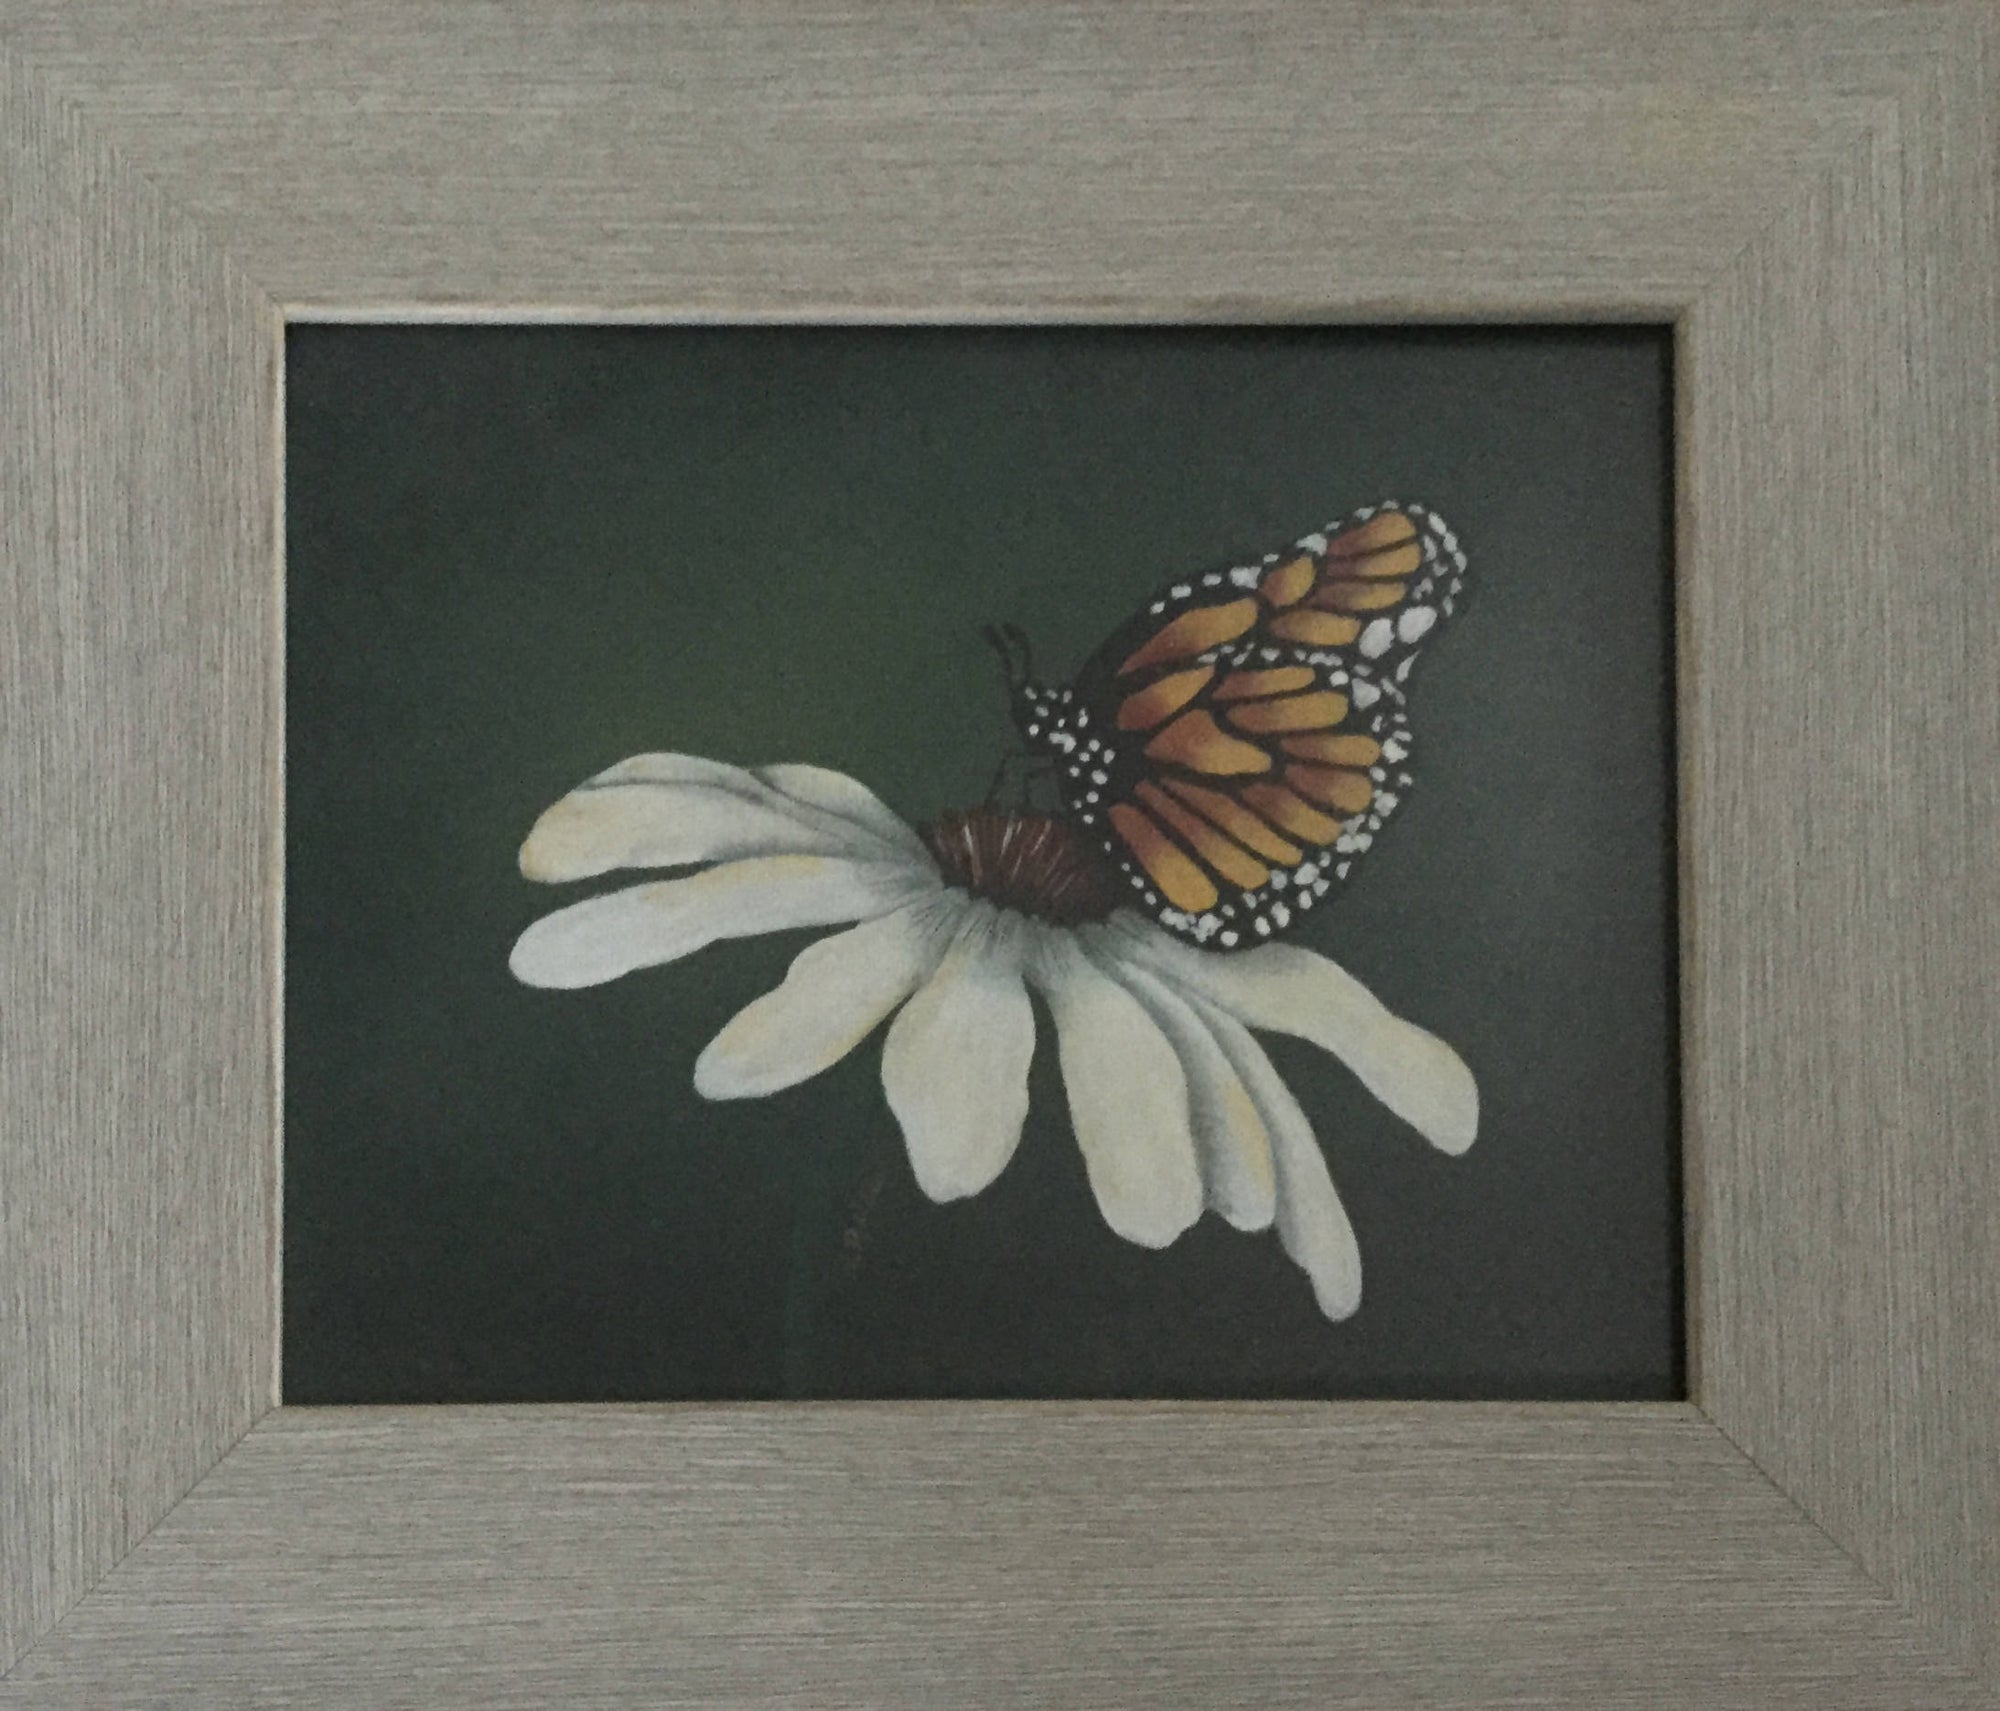 Beautiful Framed Table Art of a White Daisy and a Monarch Butterfly